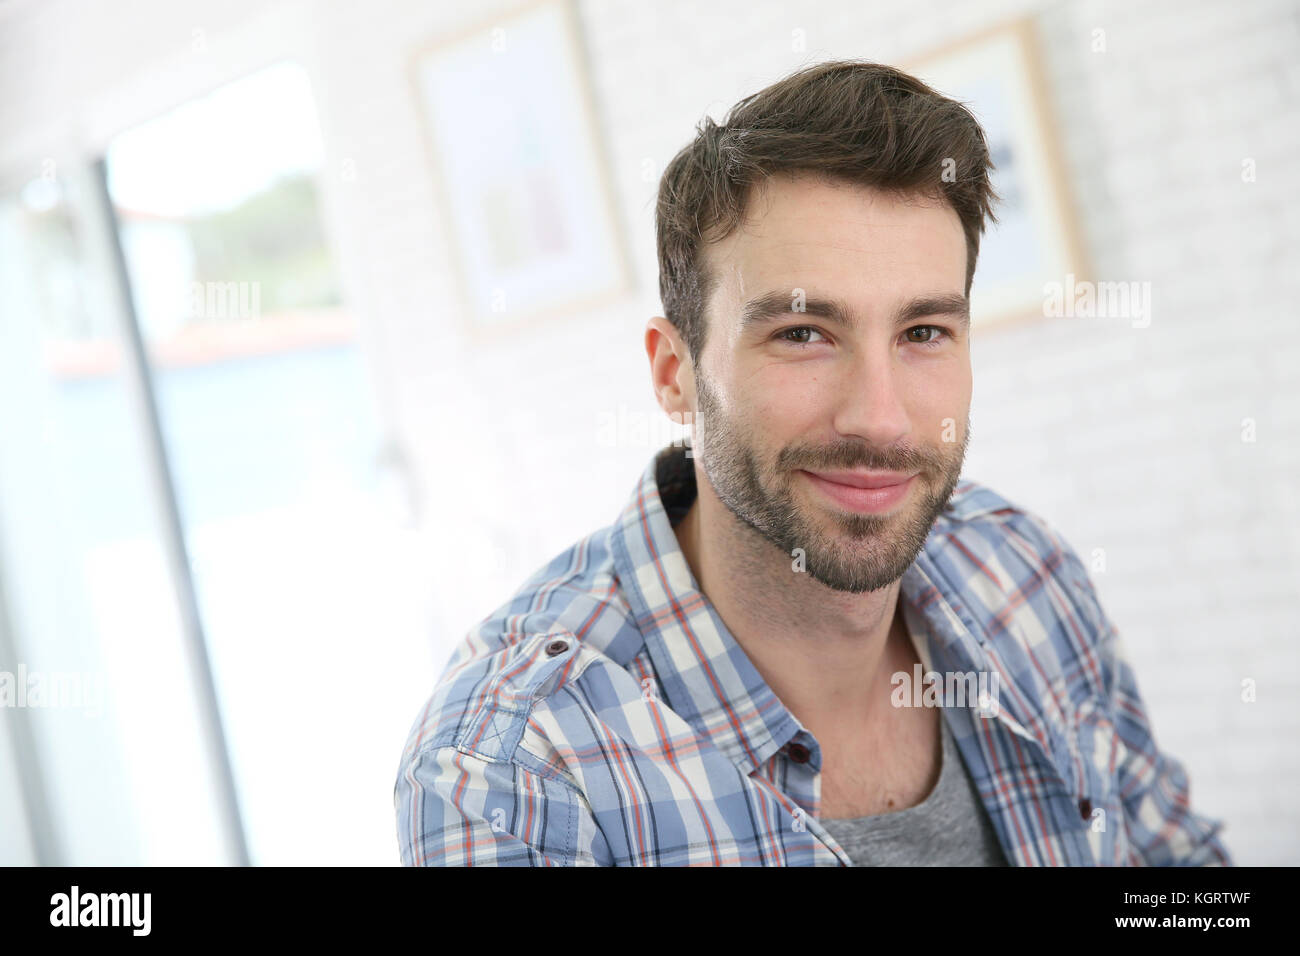 Portrait of cheerful 30-year-old man - Stock Image